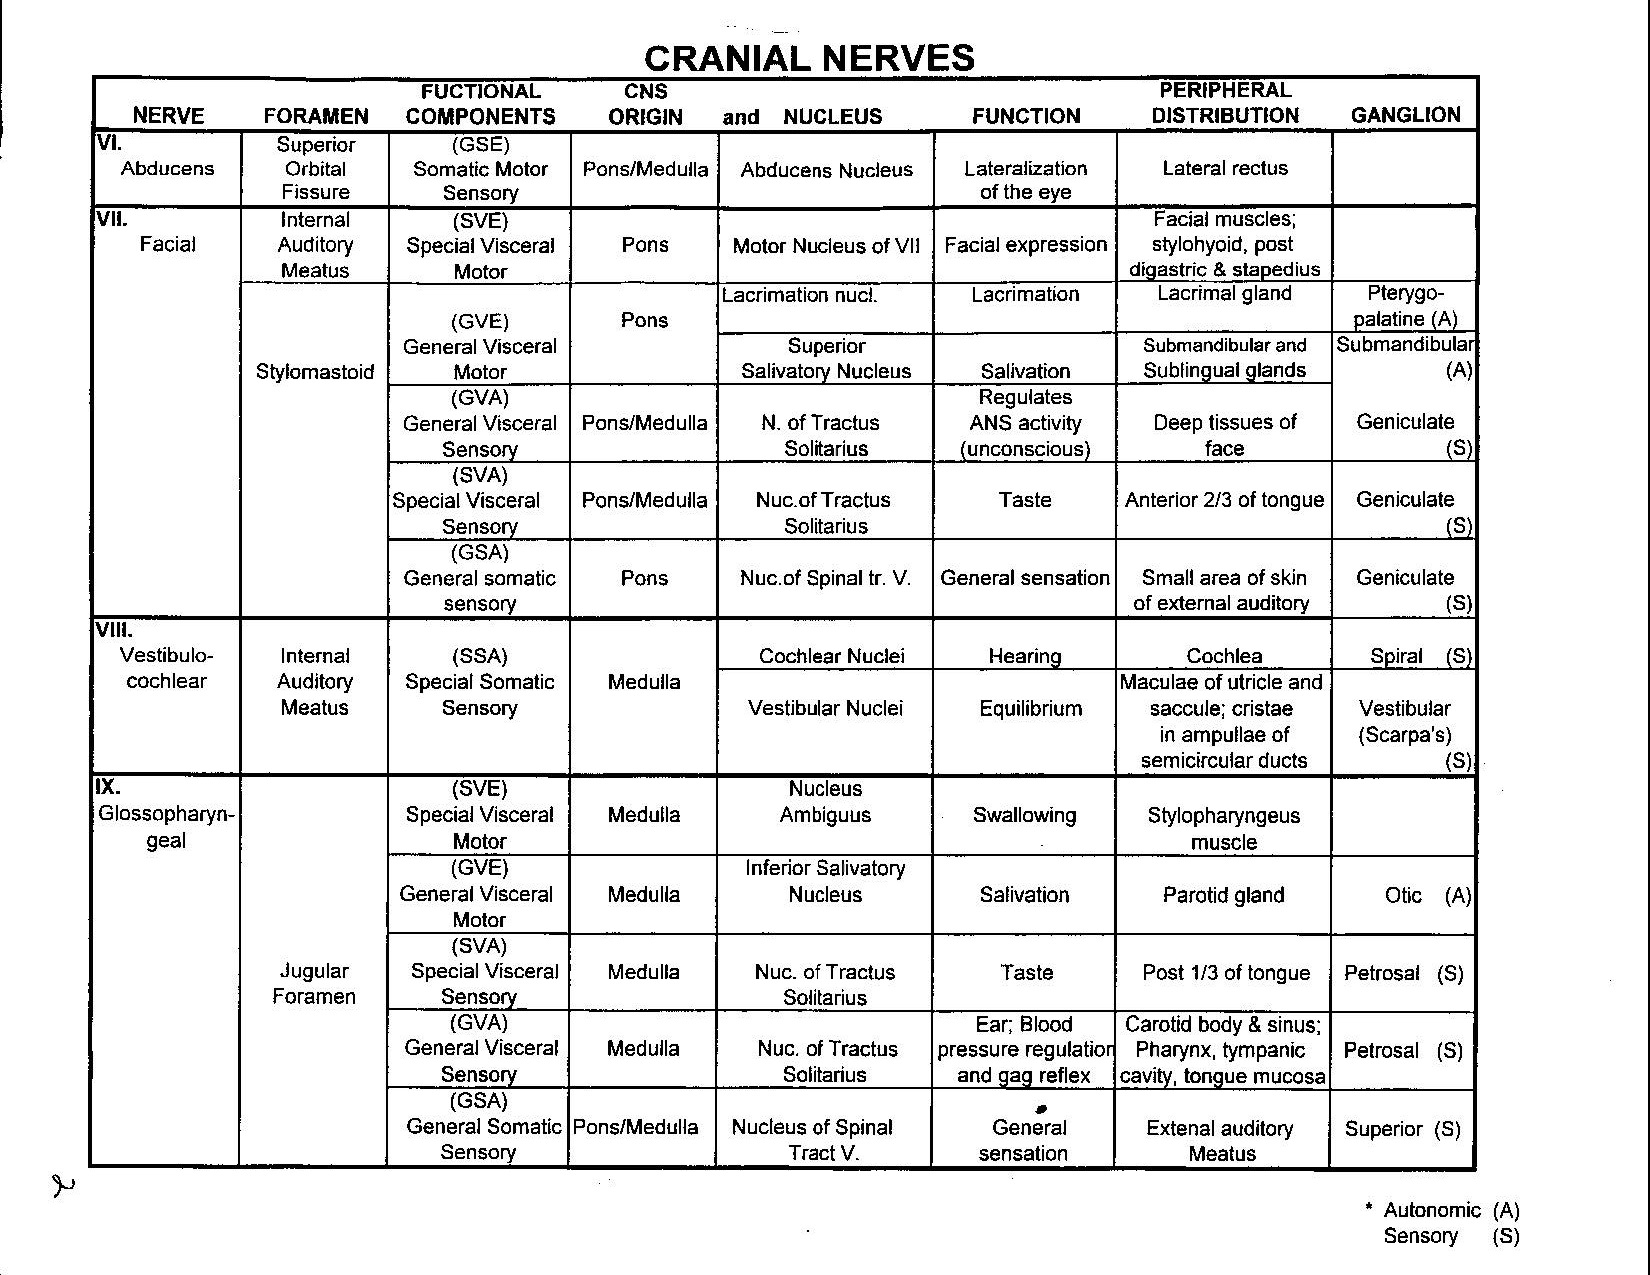 Anat Cranial Nerve Detailed Spreadsheet 2